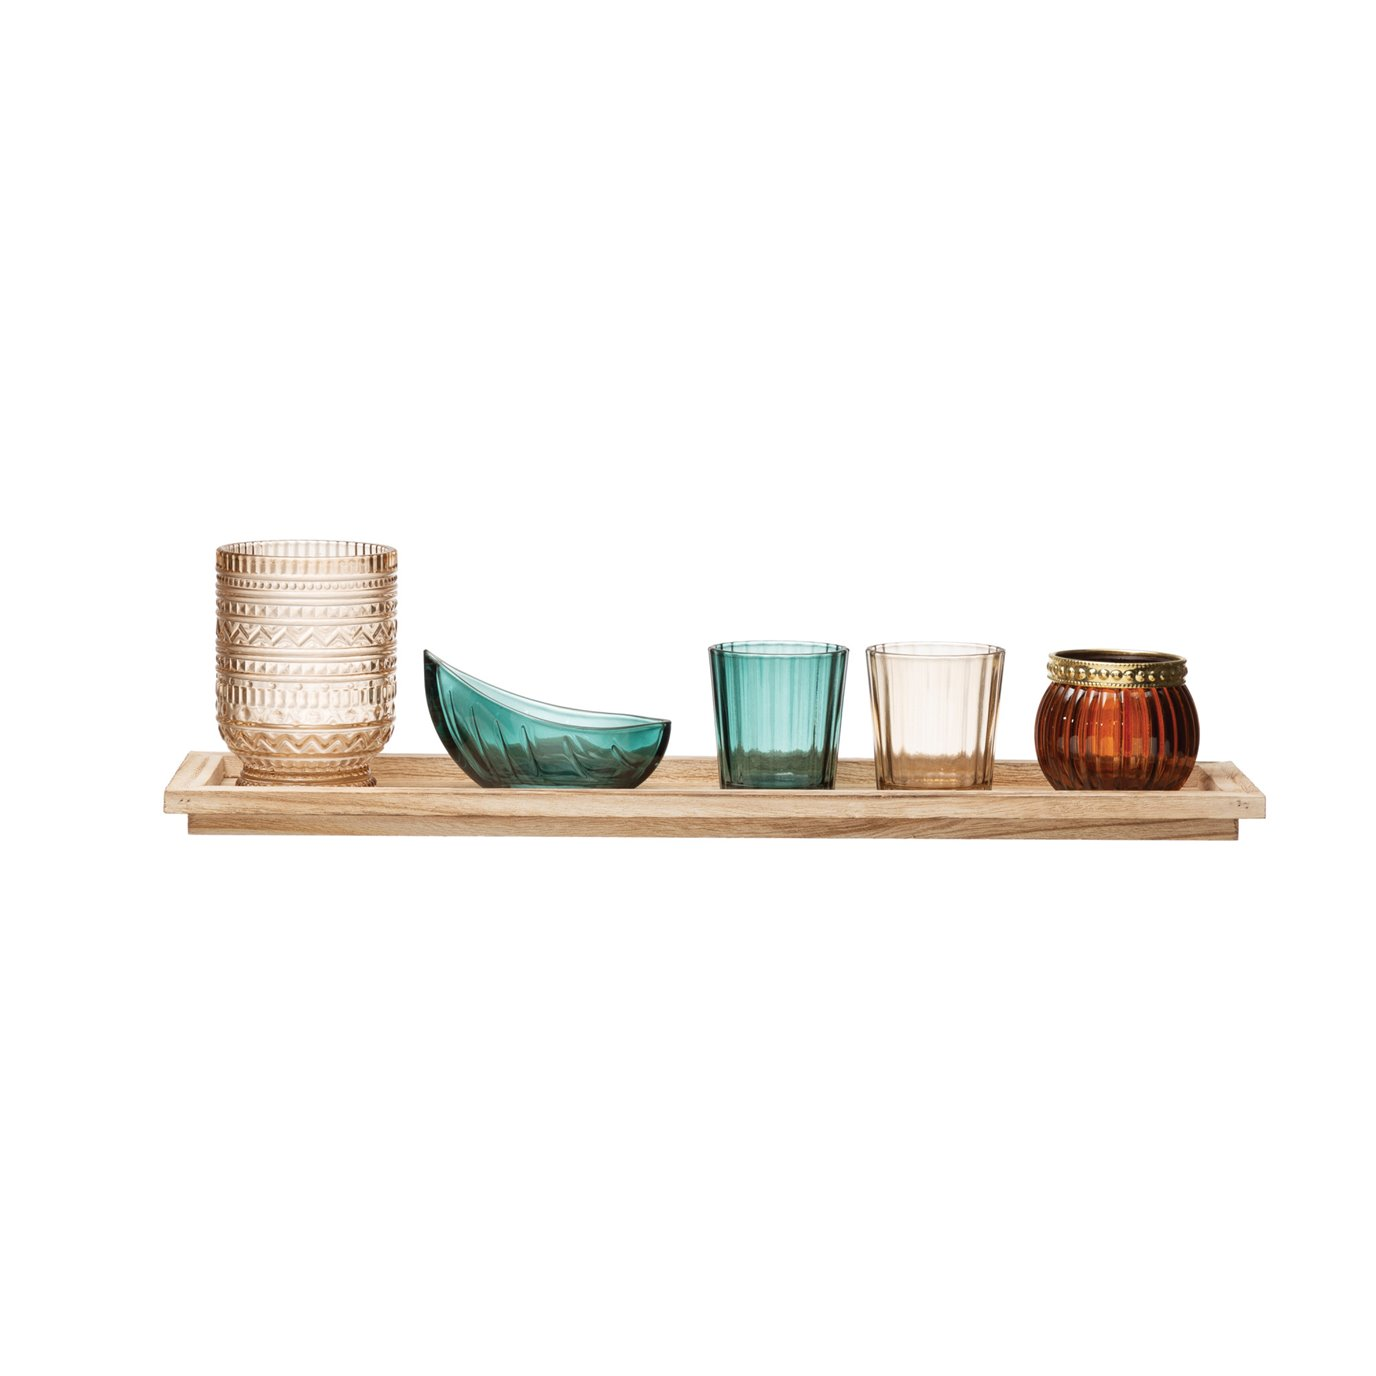 Paulownia Wood Tray with 5 Glass Votive/Tealight Holders (Boxed Set of 6 Pieces)